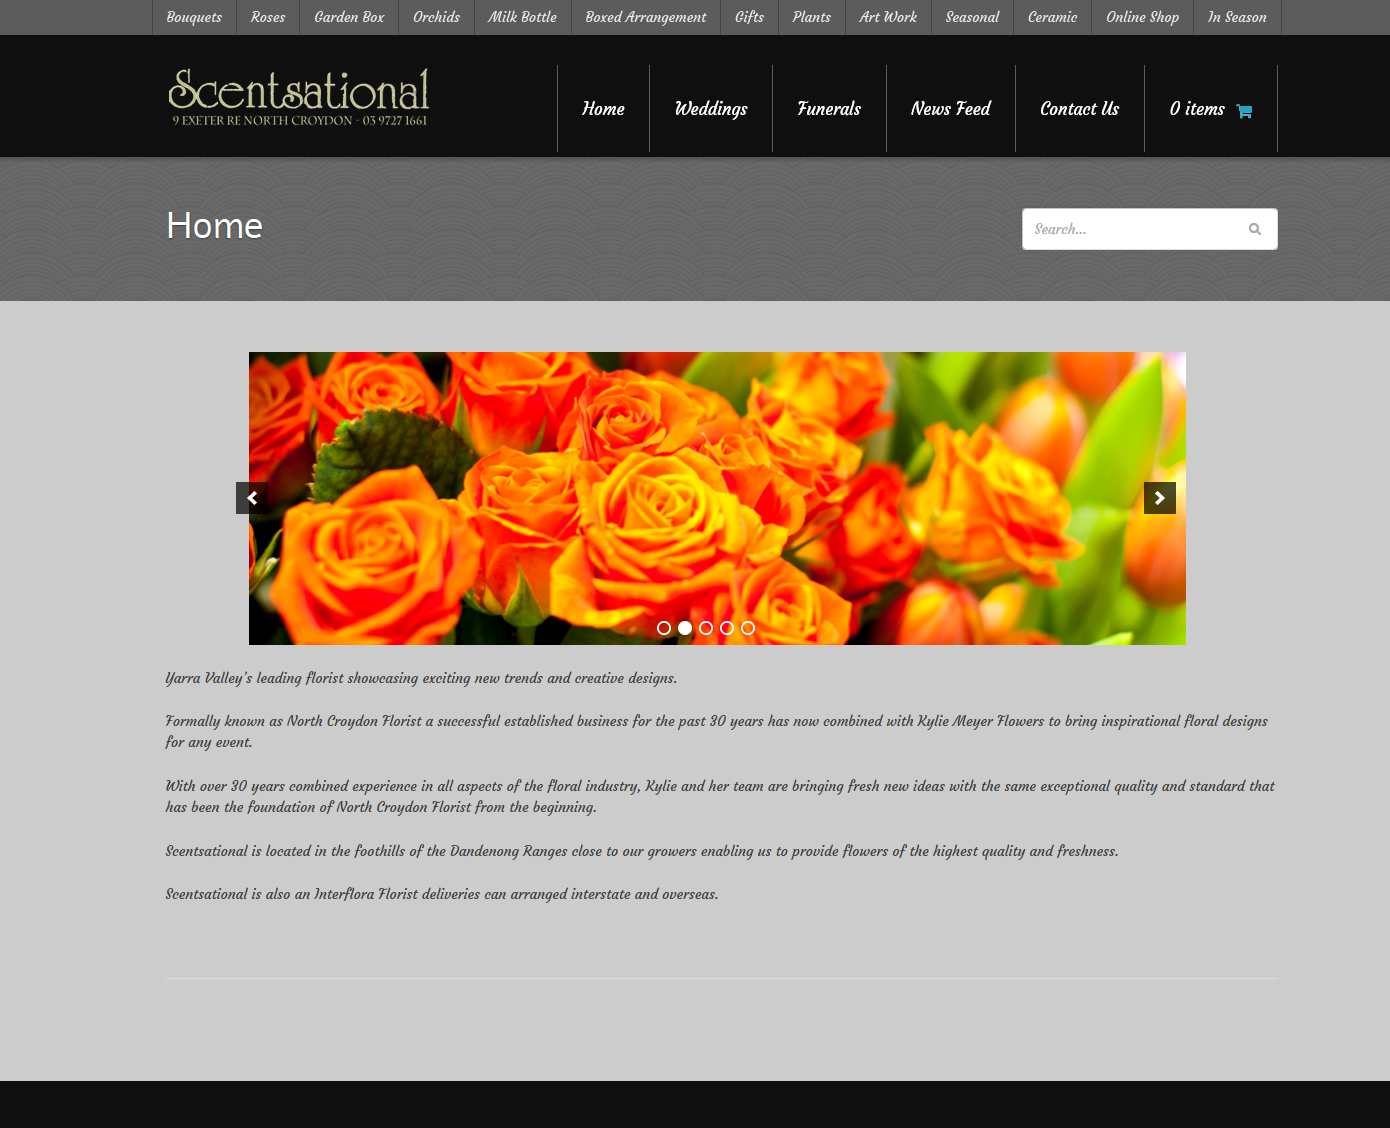 Scentsational Flowers – North Croydon Florist Website Design